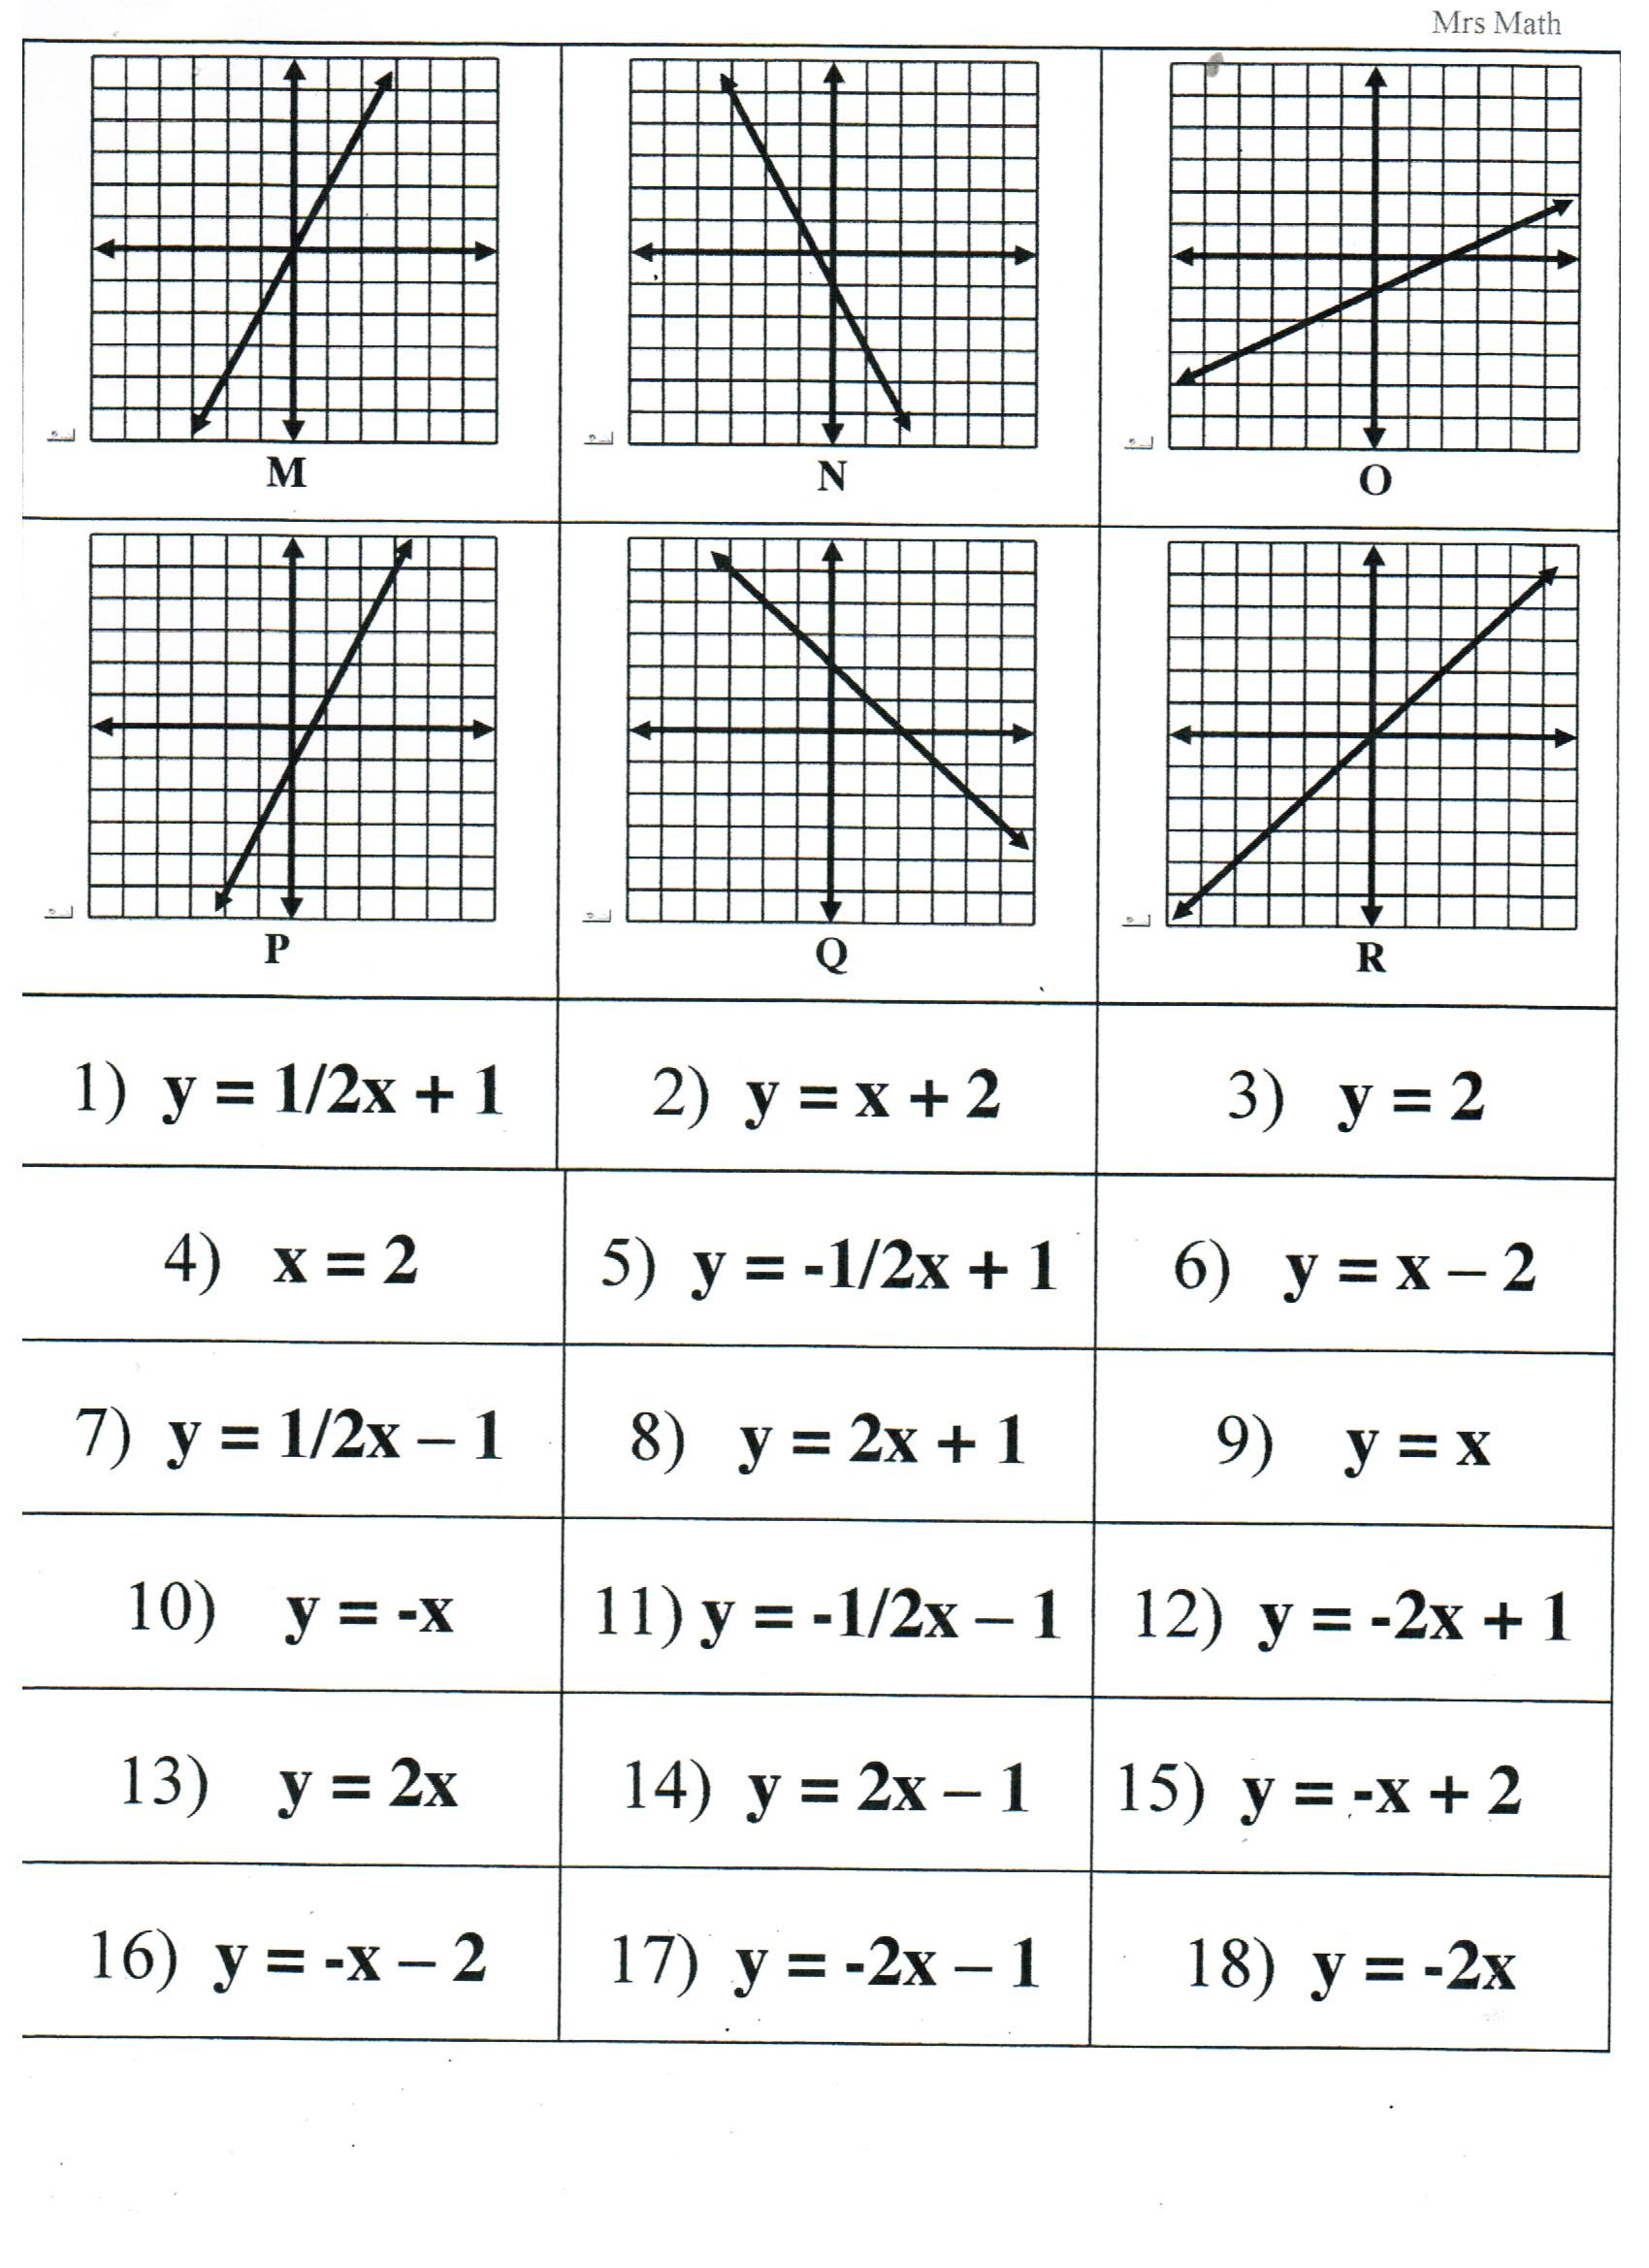 Writing Equations From Tables Worksheets Matching Equations Tables and Graphs Worksheet Answers